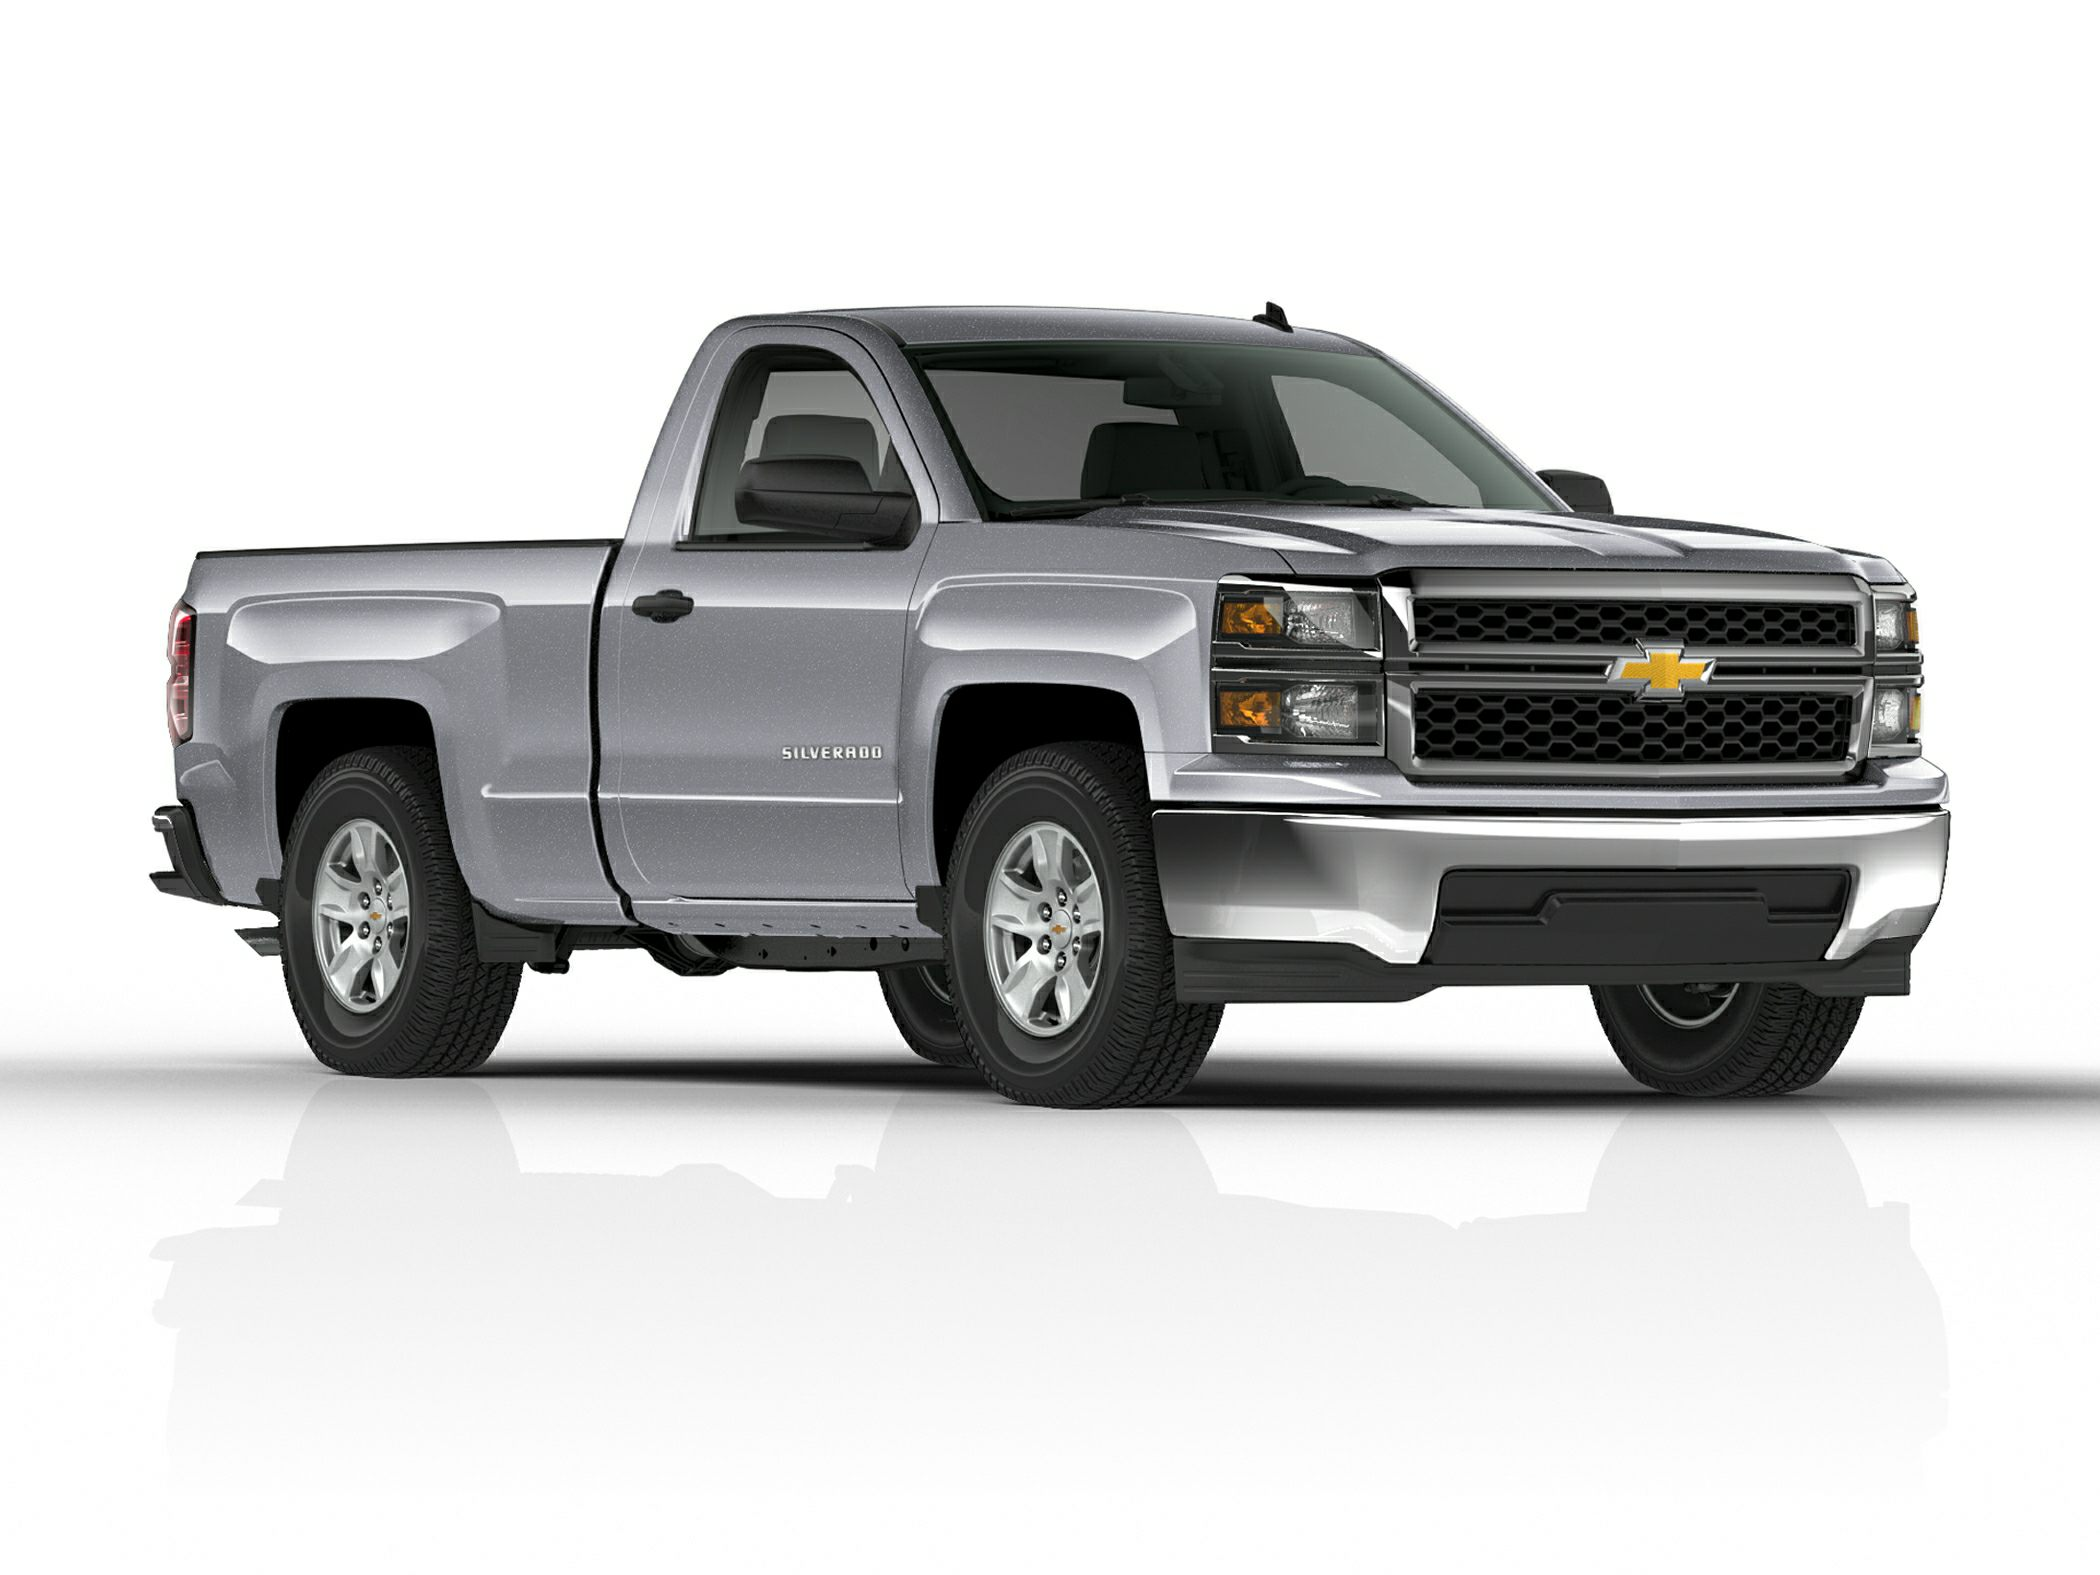 chevrolet silverado 1500 regular cab specs 2013 2014 2015 2016 2017 2018 autoevolution. Black Bedroom Furniture Sets. Home Design Ideas